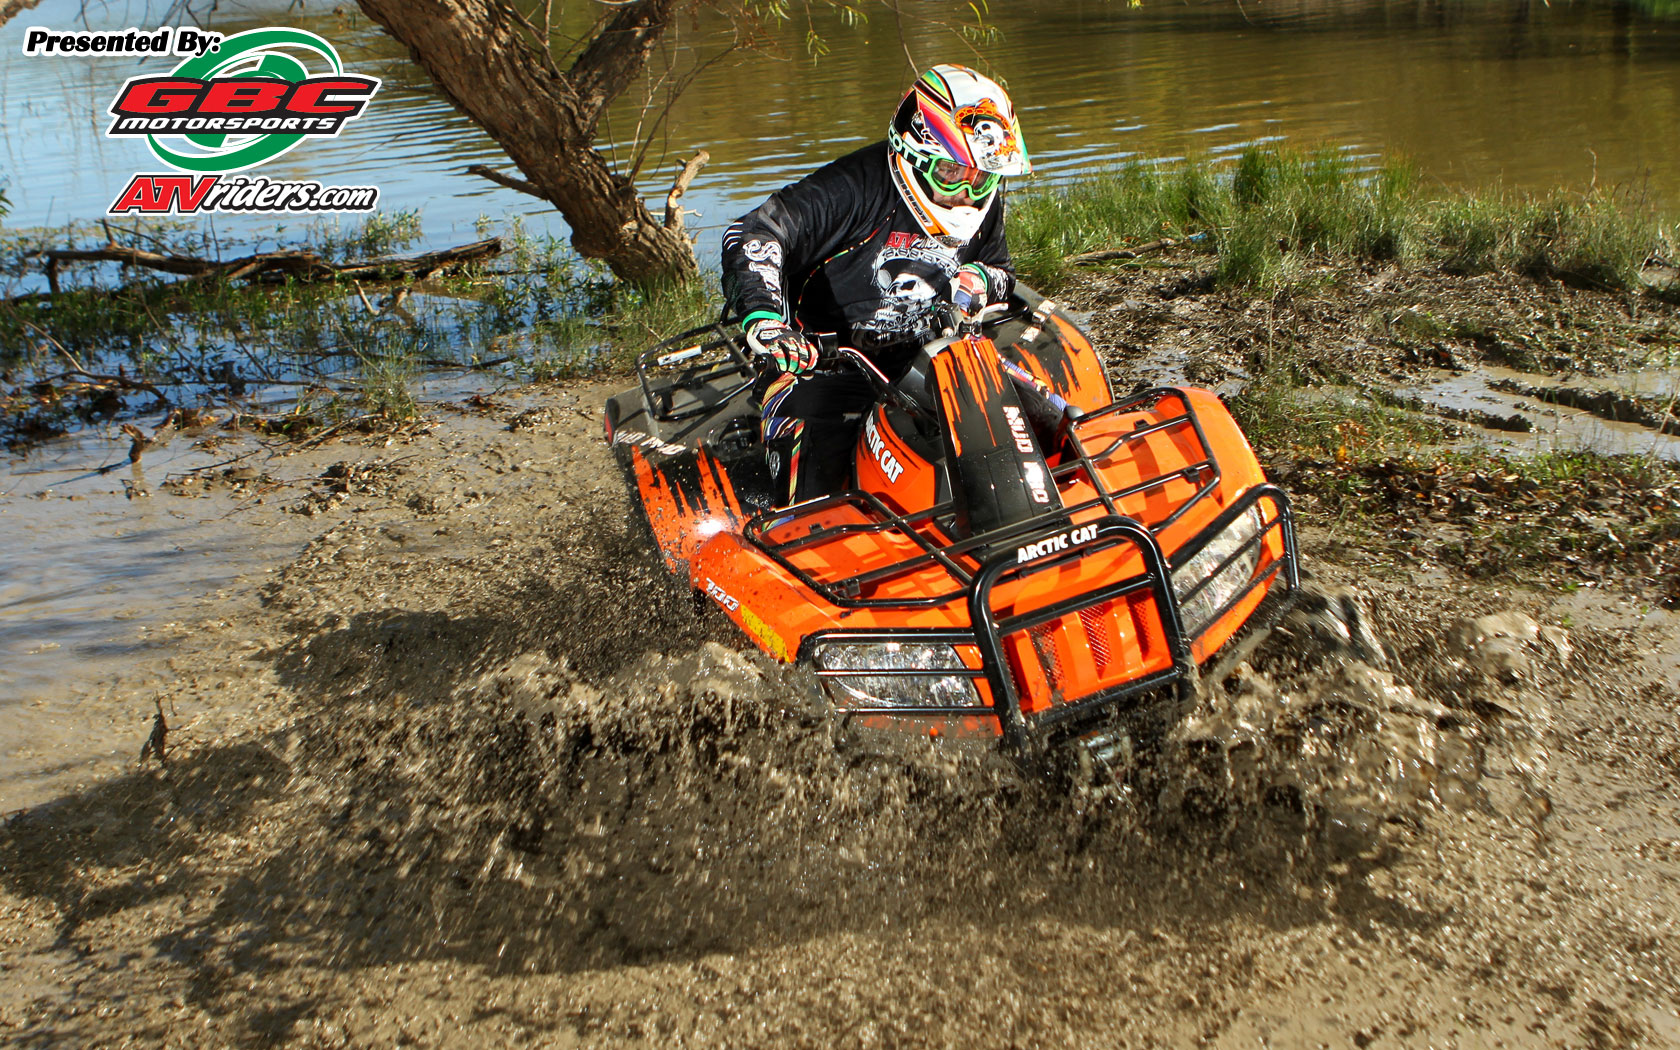 Arctic Cat Mud Pro 700 4x4 Utility ATV Mud   Wednesday Wallpapers 1680x1050